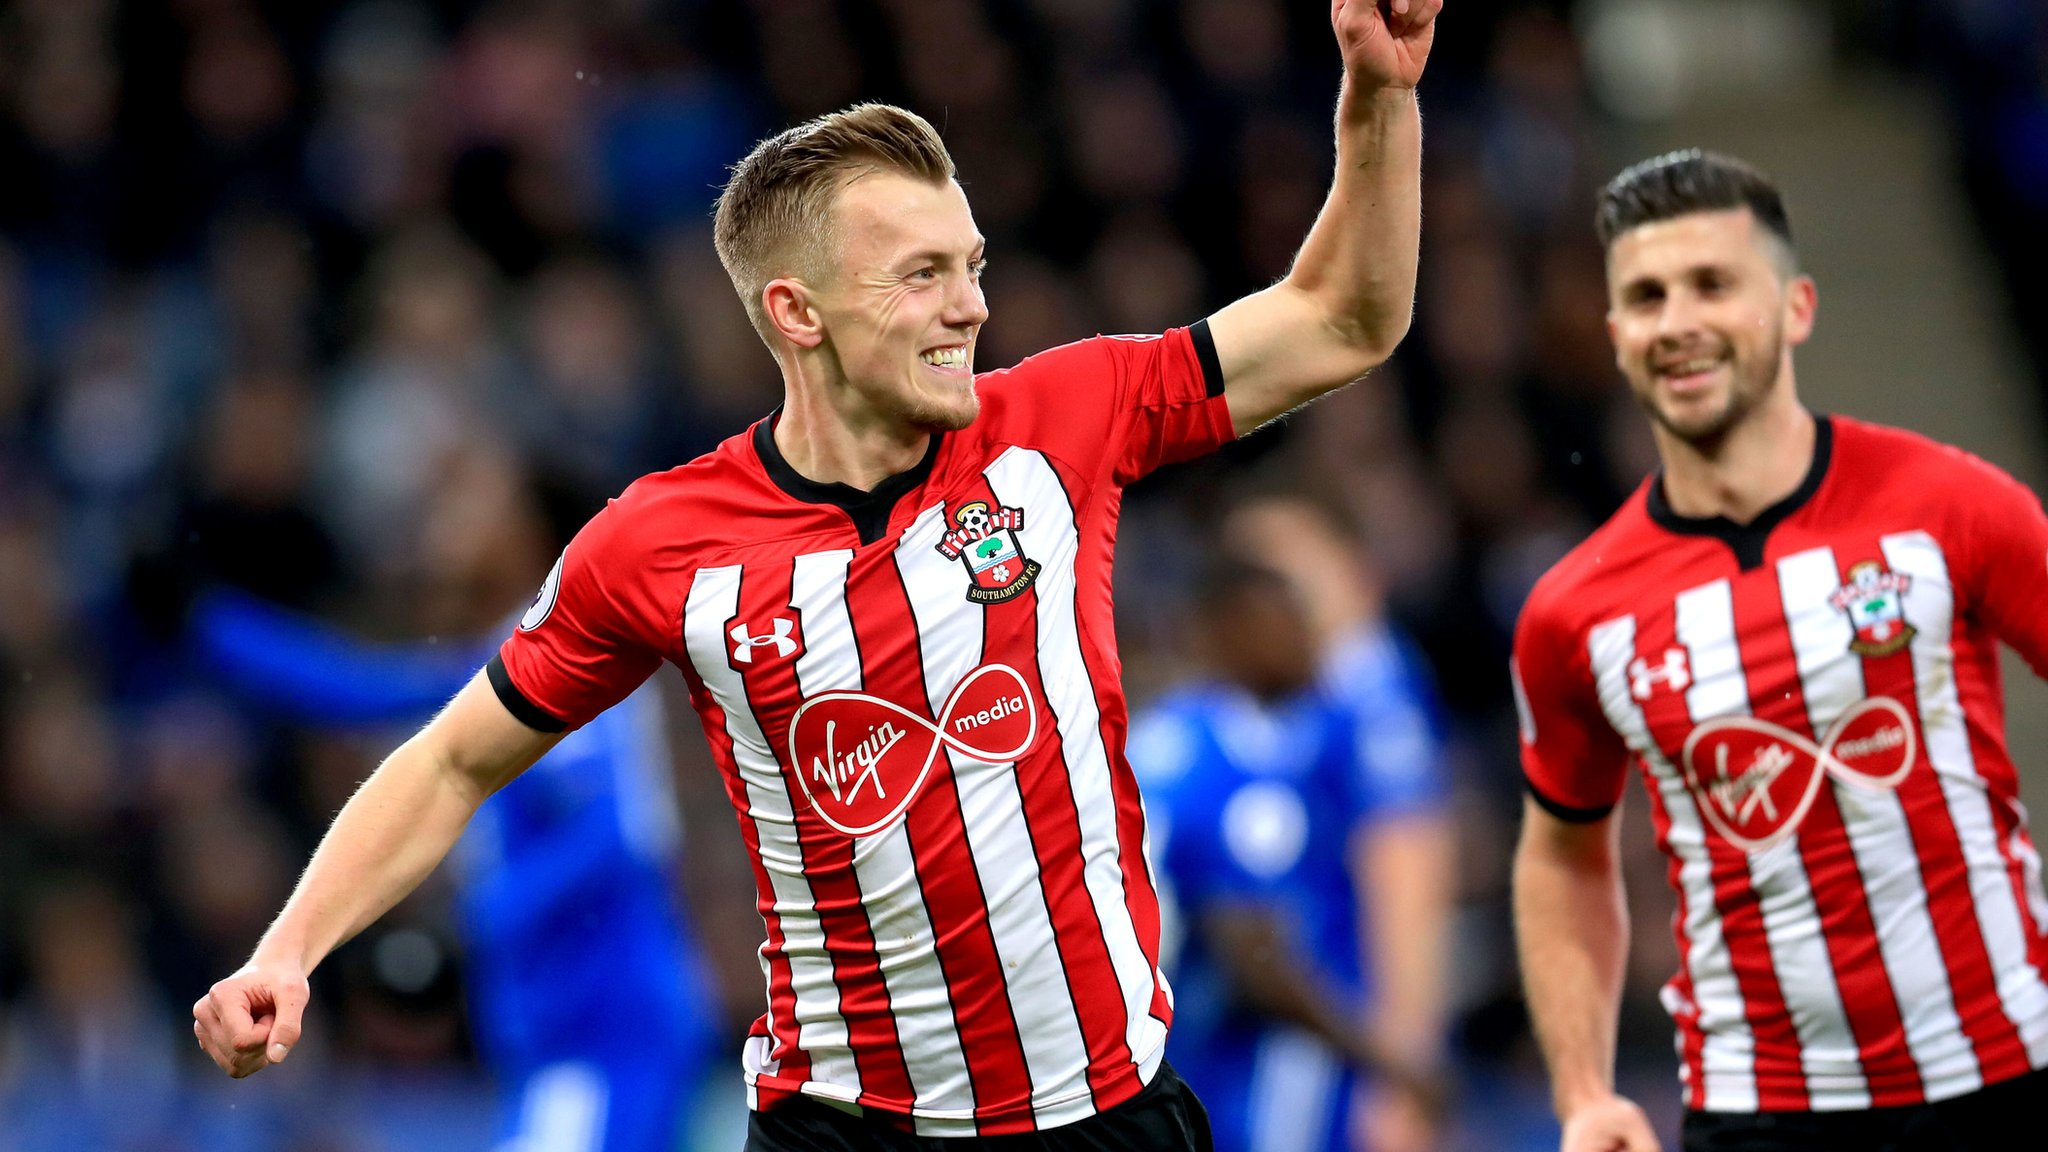 Leicester 1-2 Southampton: Ward-Prowse and Long earn win for 10-man Saints